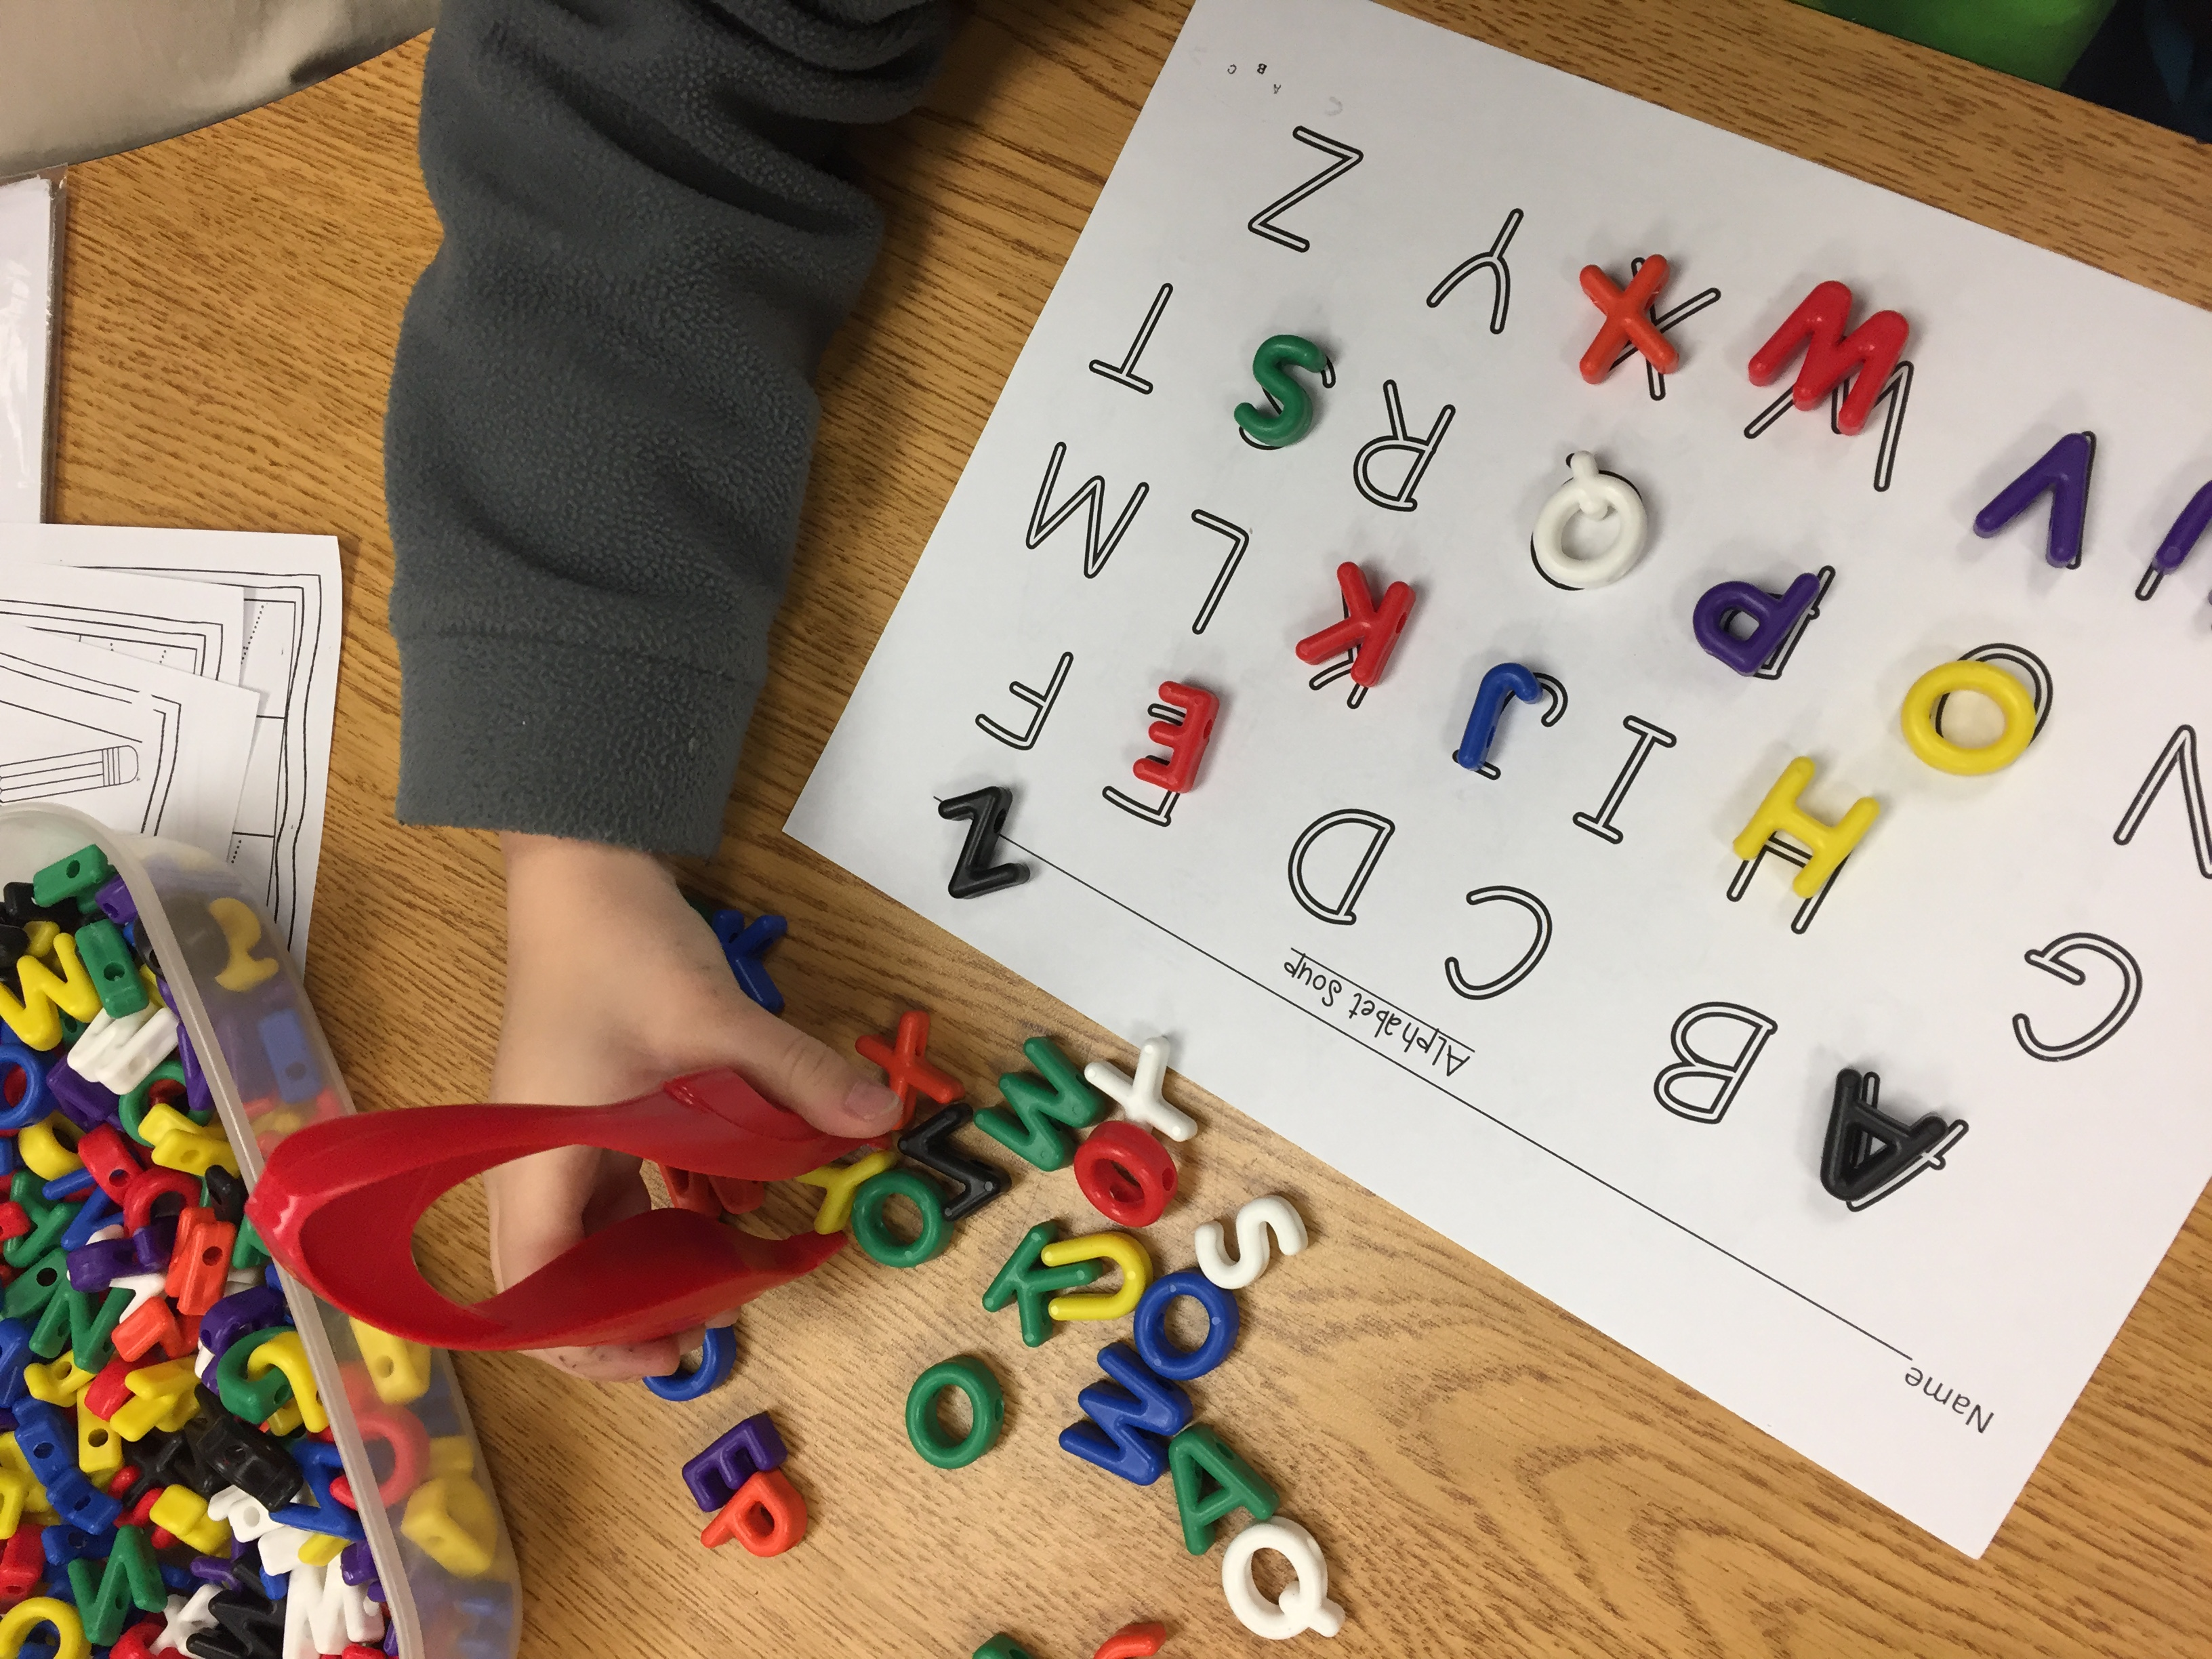 Kid using tongs to pick up letter toys to match on paper